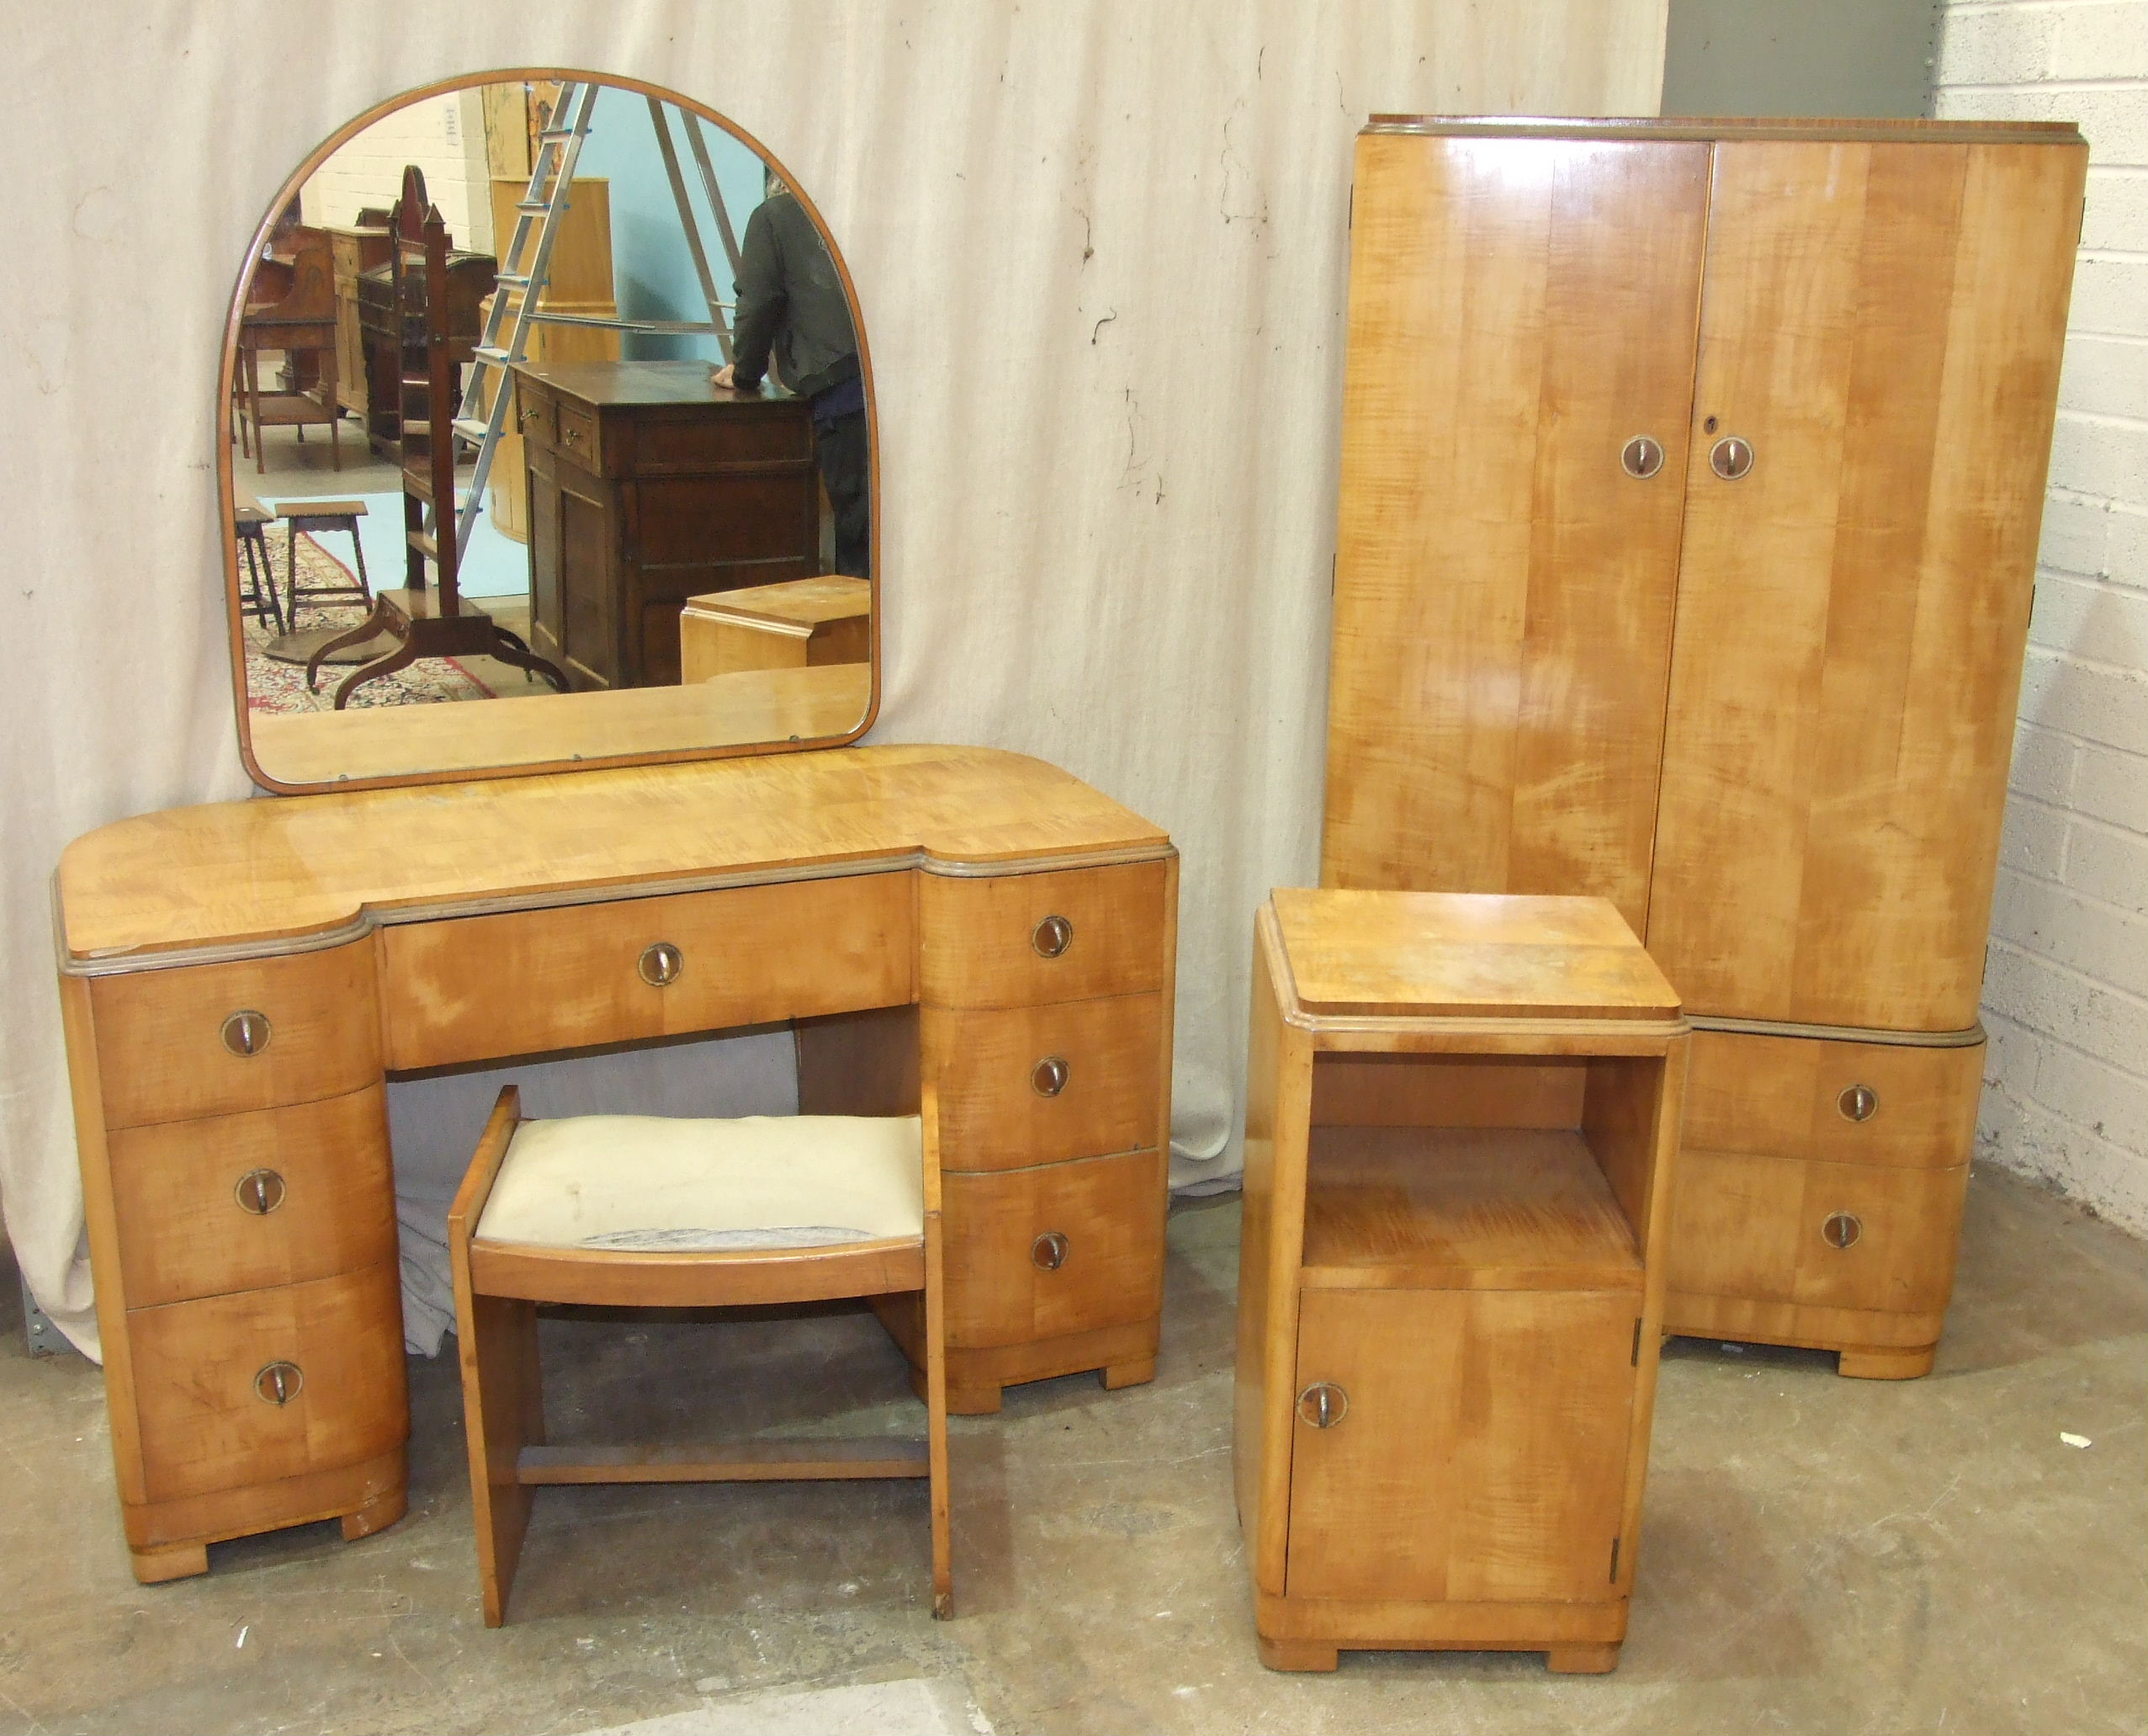 Lot 66 - A satinwood gentleman's wardrobe, matching dressing chest, stool and bedside cupboard in the Art